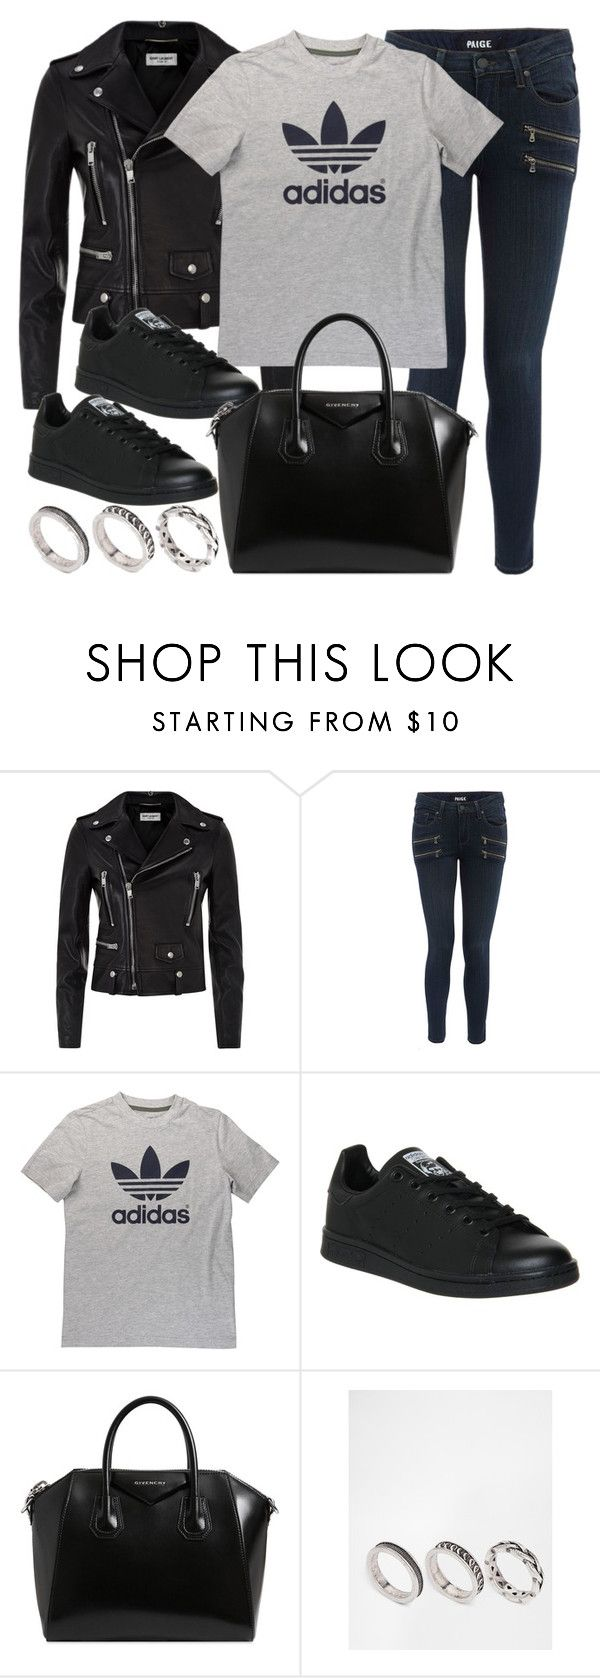 """Style #11188"" by vany-alvarado ❤ liked on Polyvore featuring Yves Saint Laurent, Paige Denim, adidas, Givenchy and ASOS"